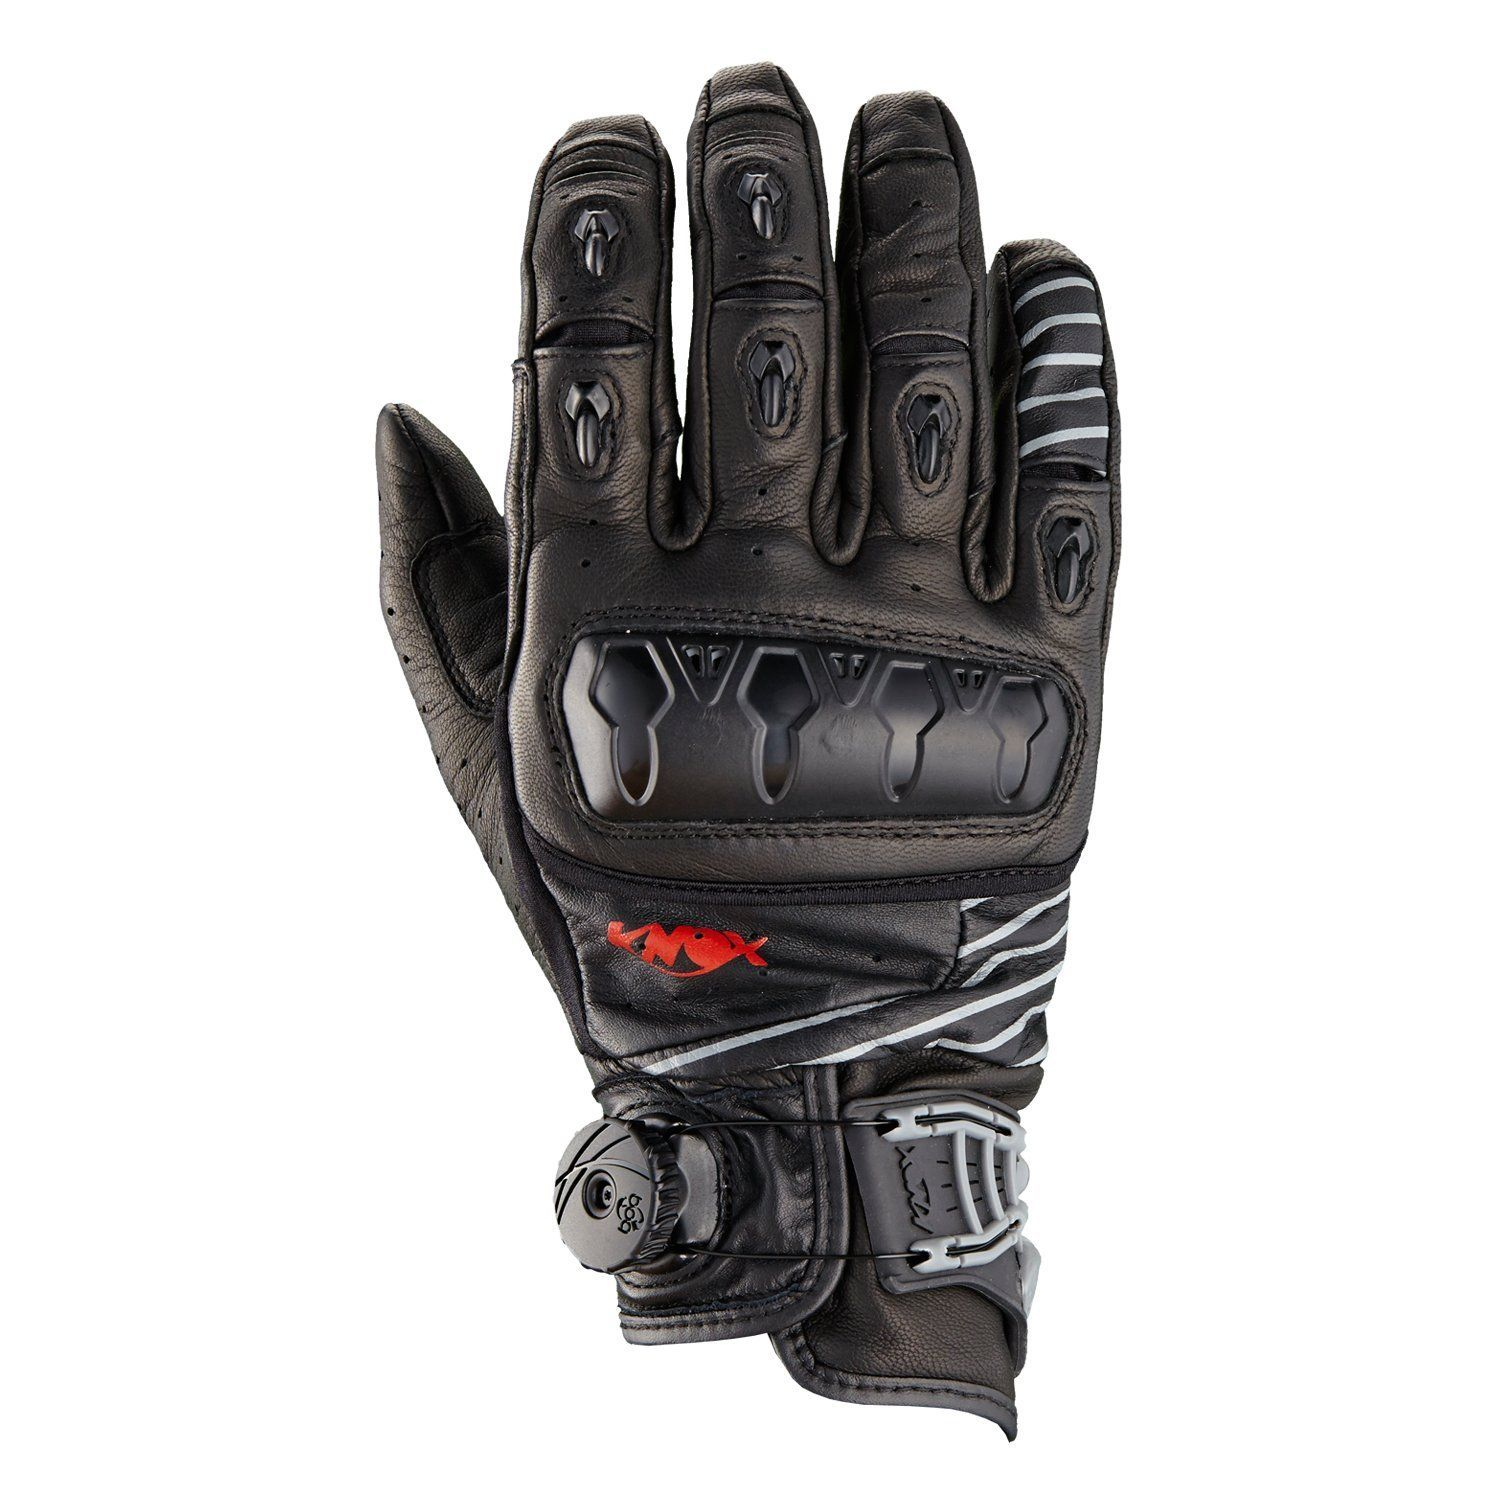 Motorcycle Gloves For Short Fingers - Knox orsa leather motorcycle gloves http playwellbikers co uk